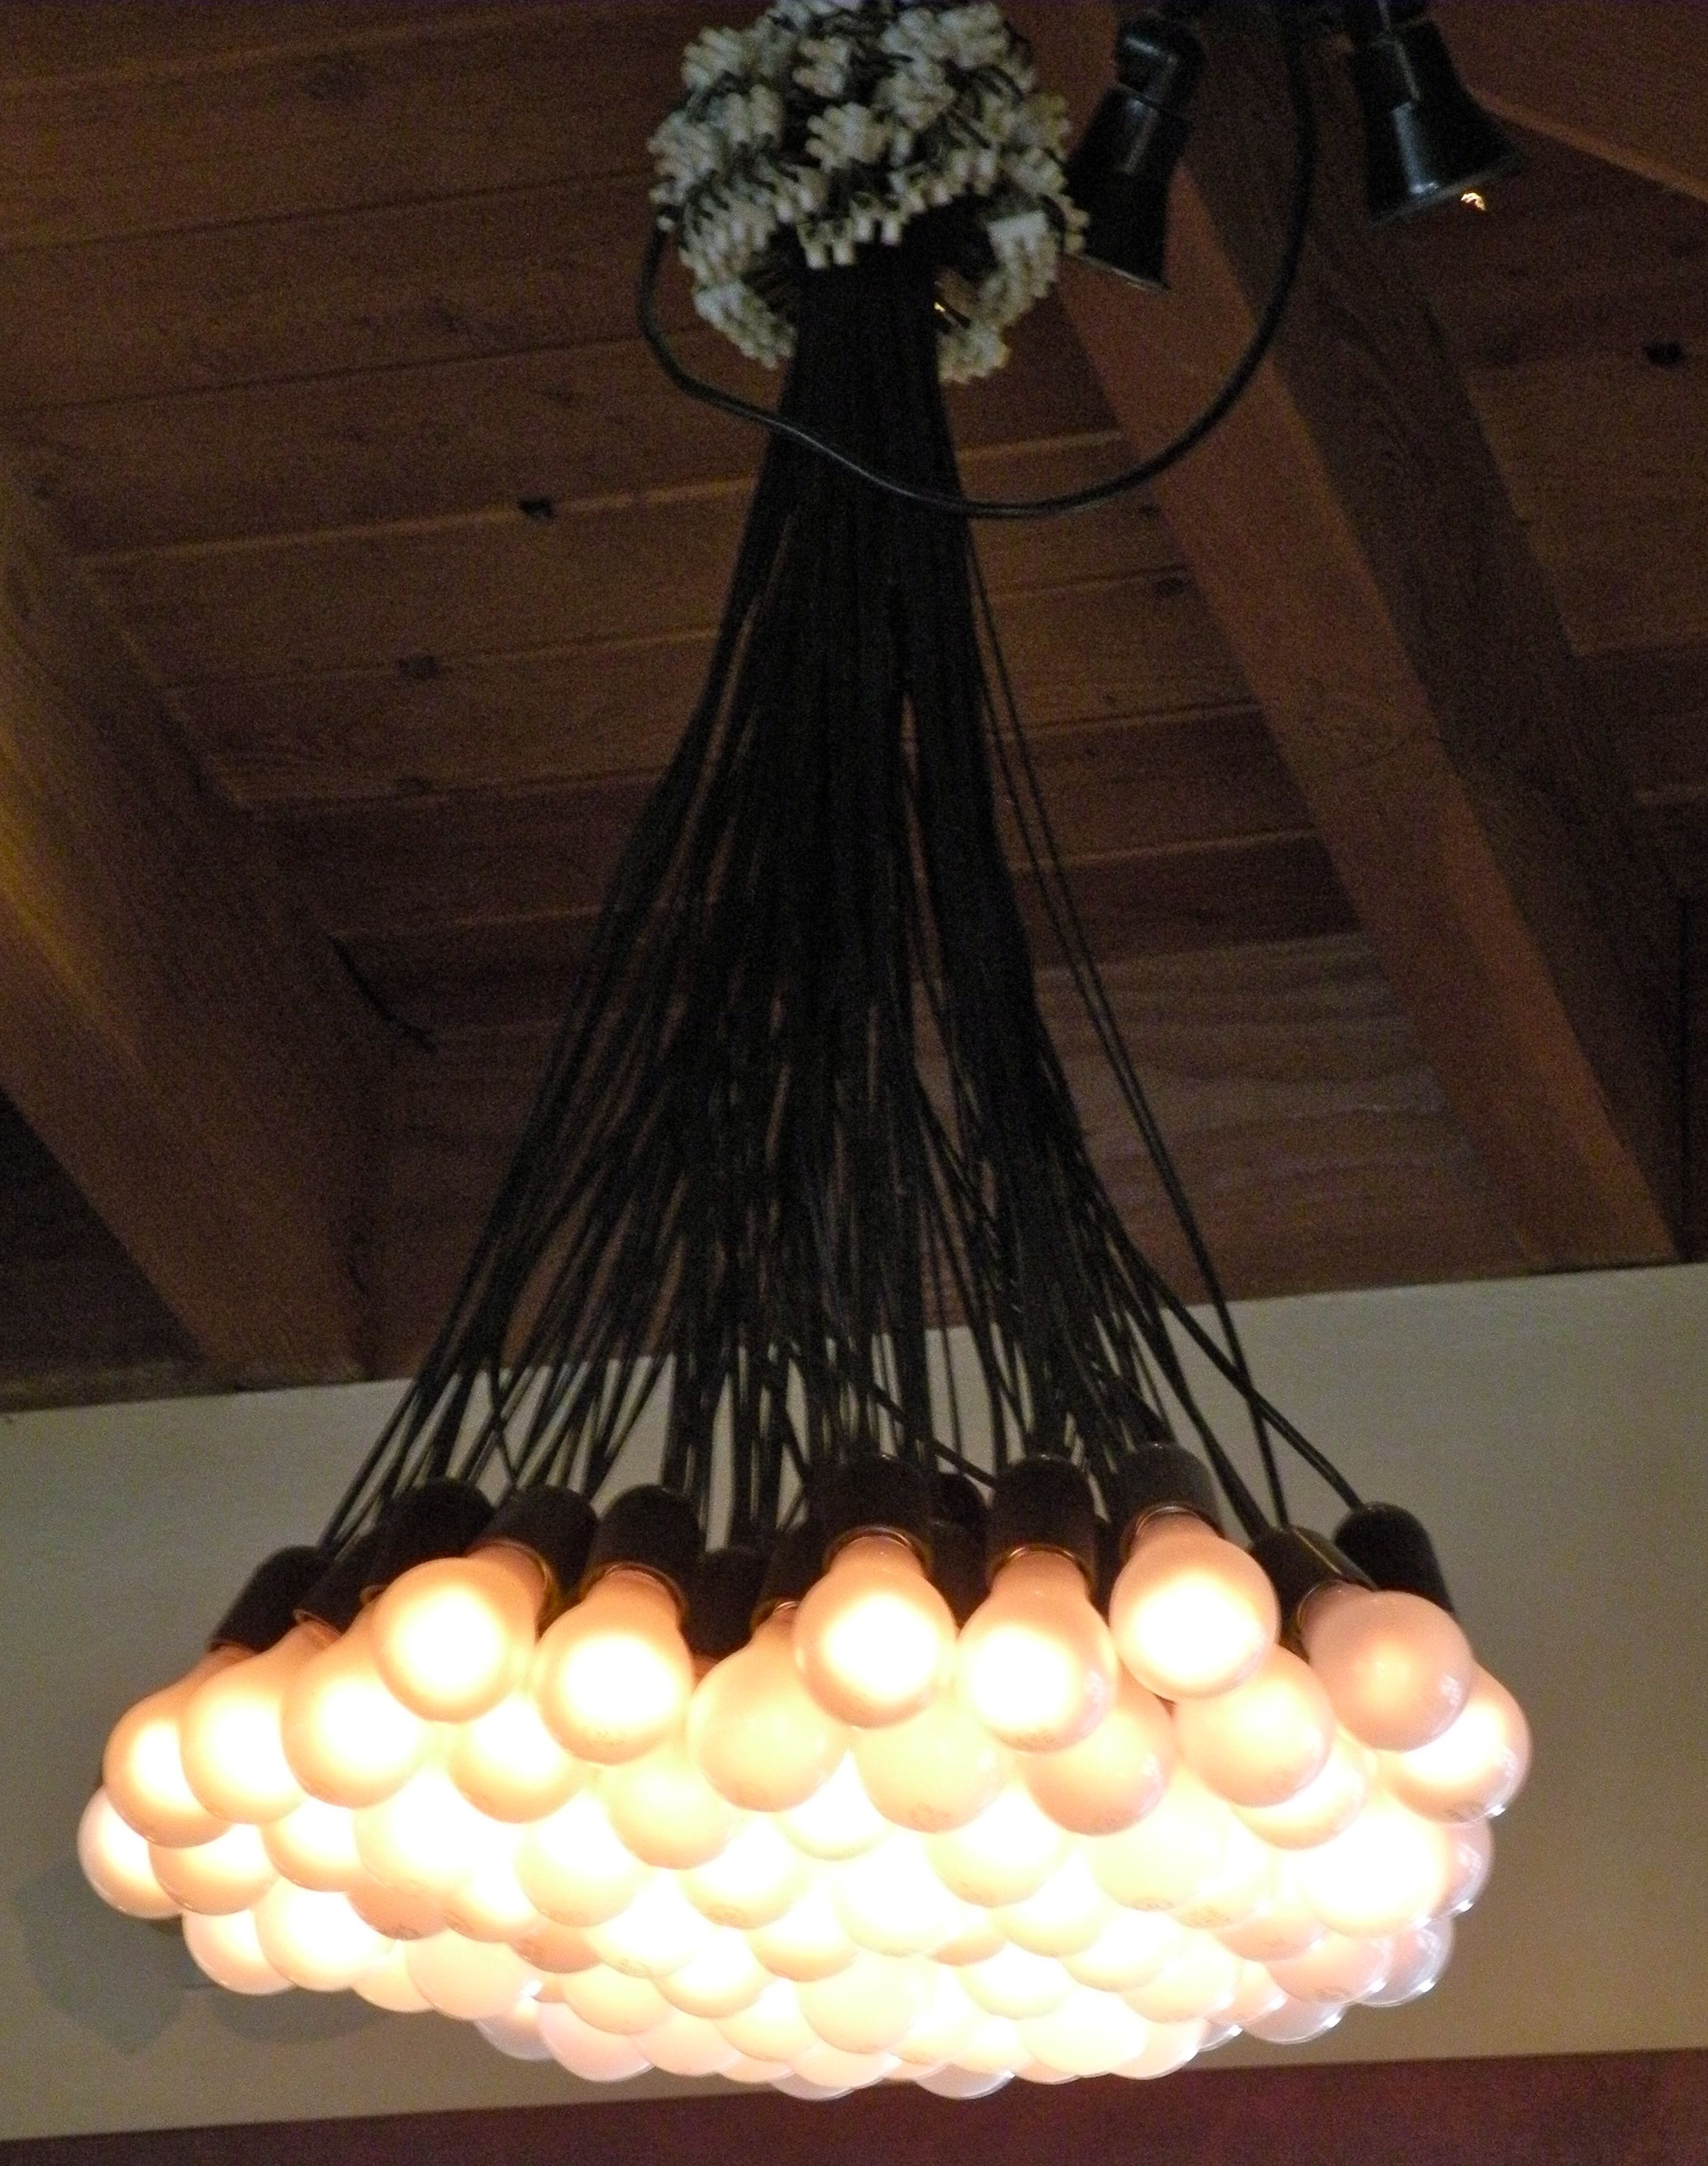 Napa valley restaurant light fixture